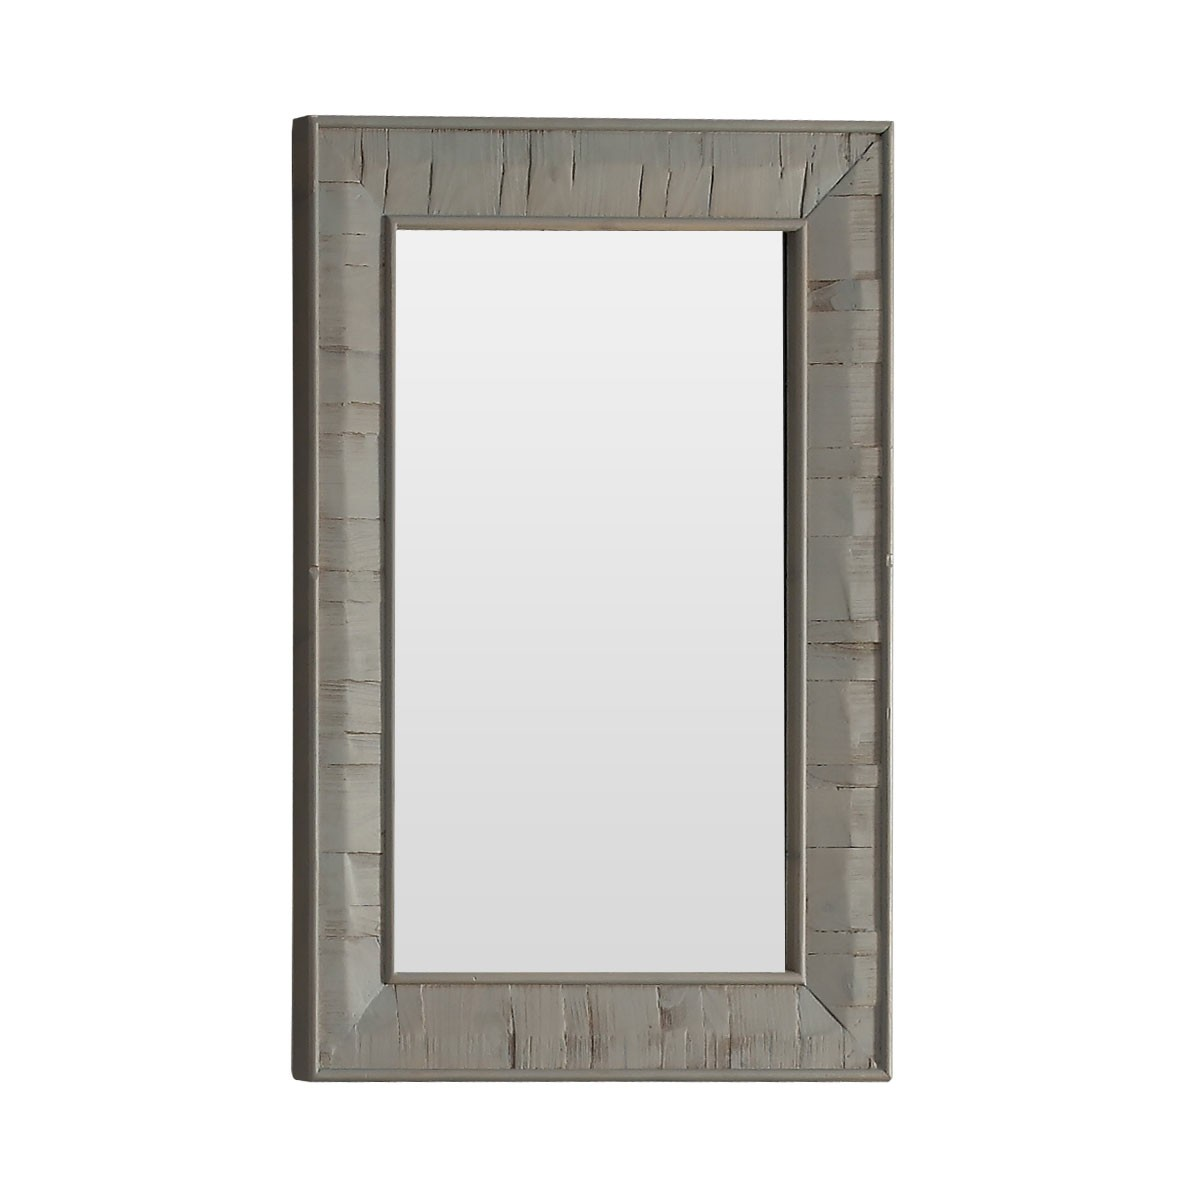 26 x 36 In Bath Vanity Décor Mirror with Fir Wood Frame (DK-WK9226-GY)